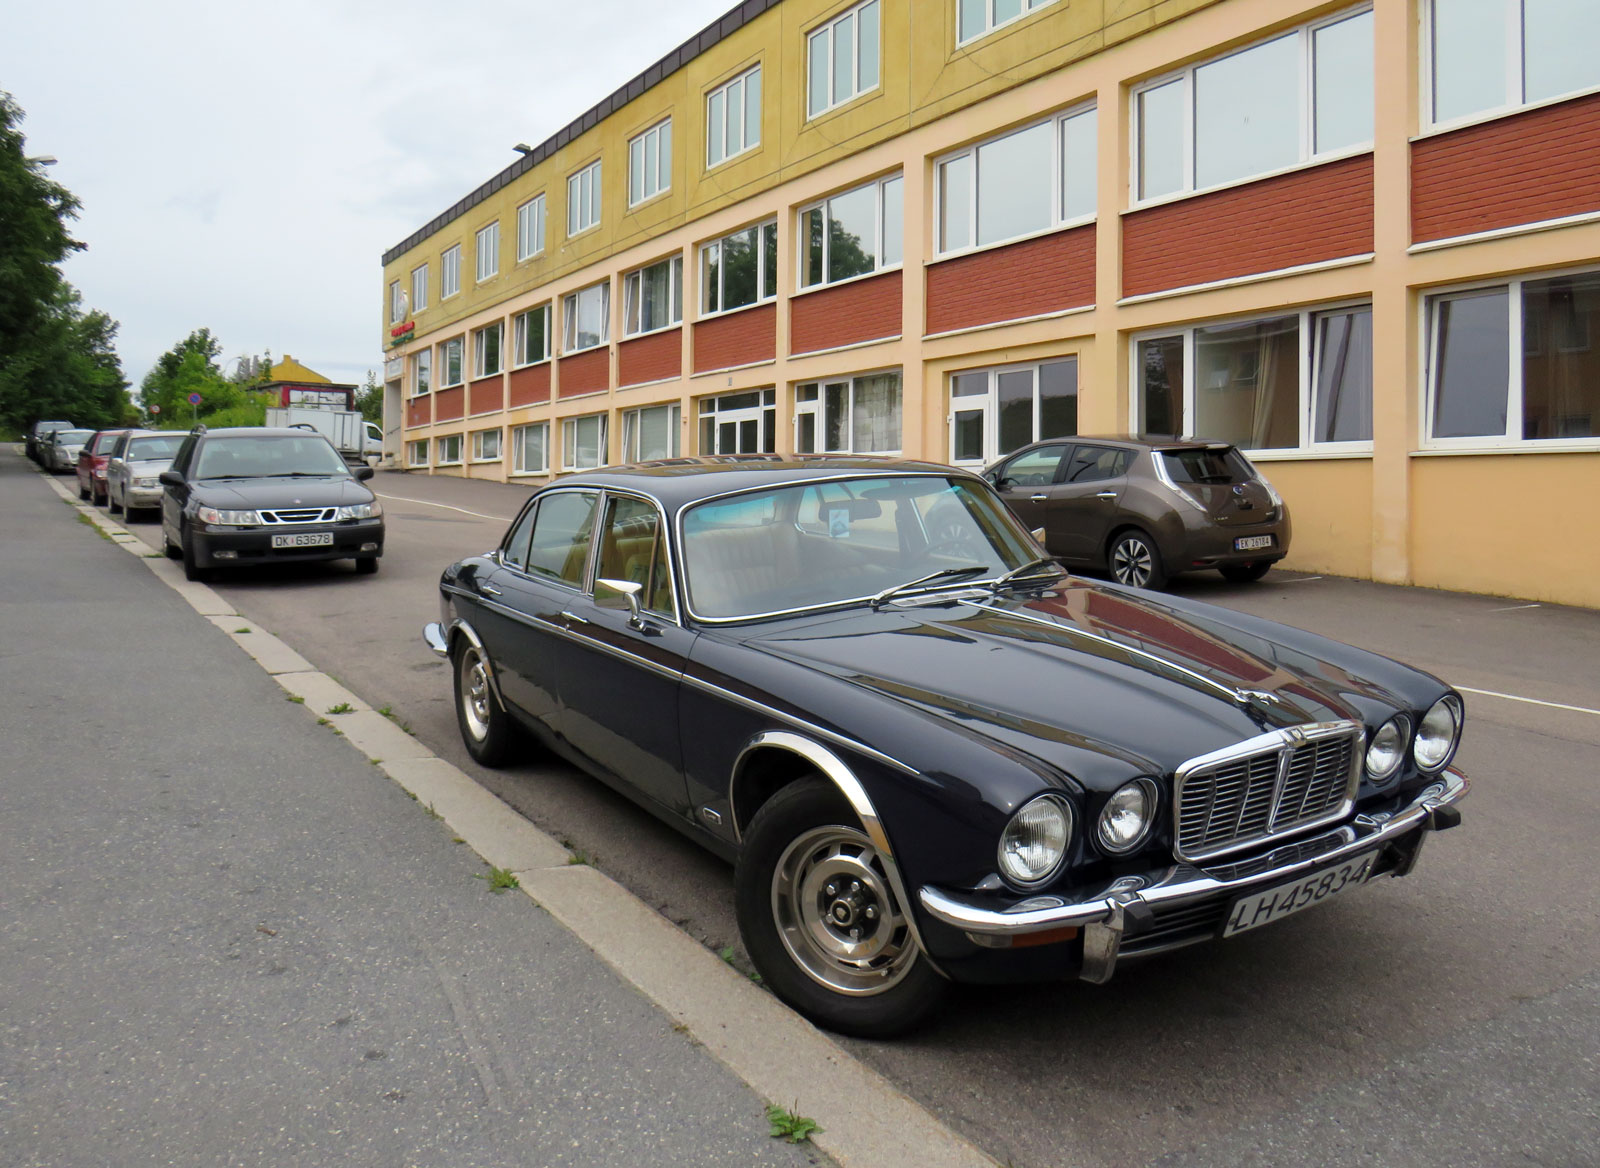 1975 Jaguar XJ 4.2 Daimler Oslo Norway parked